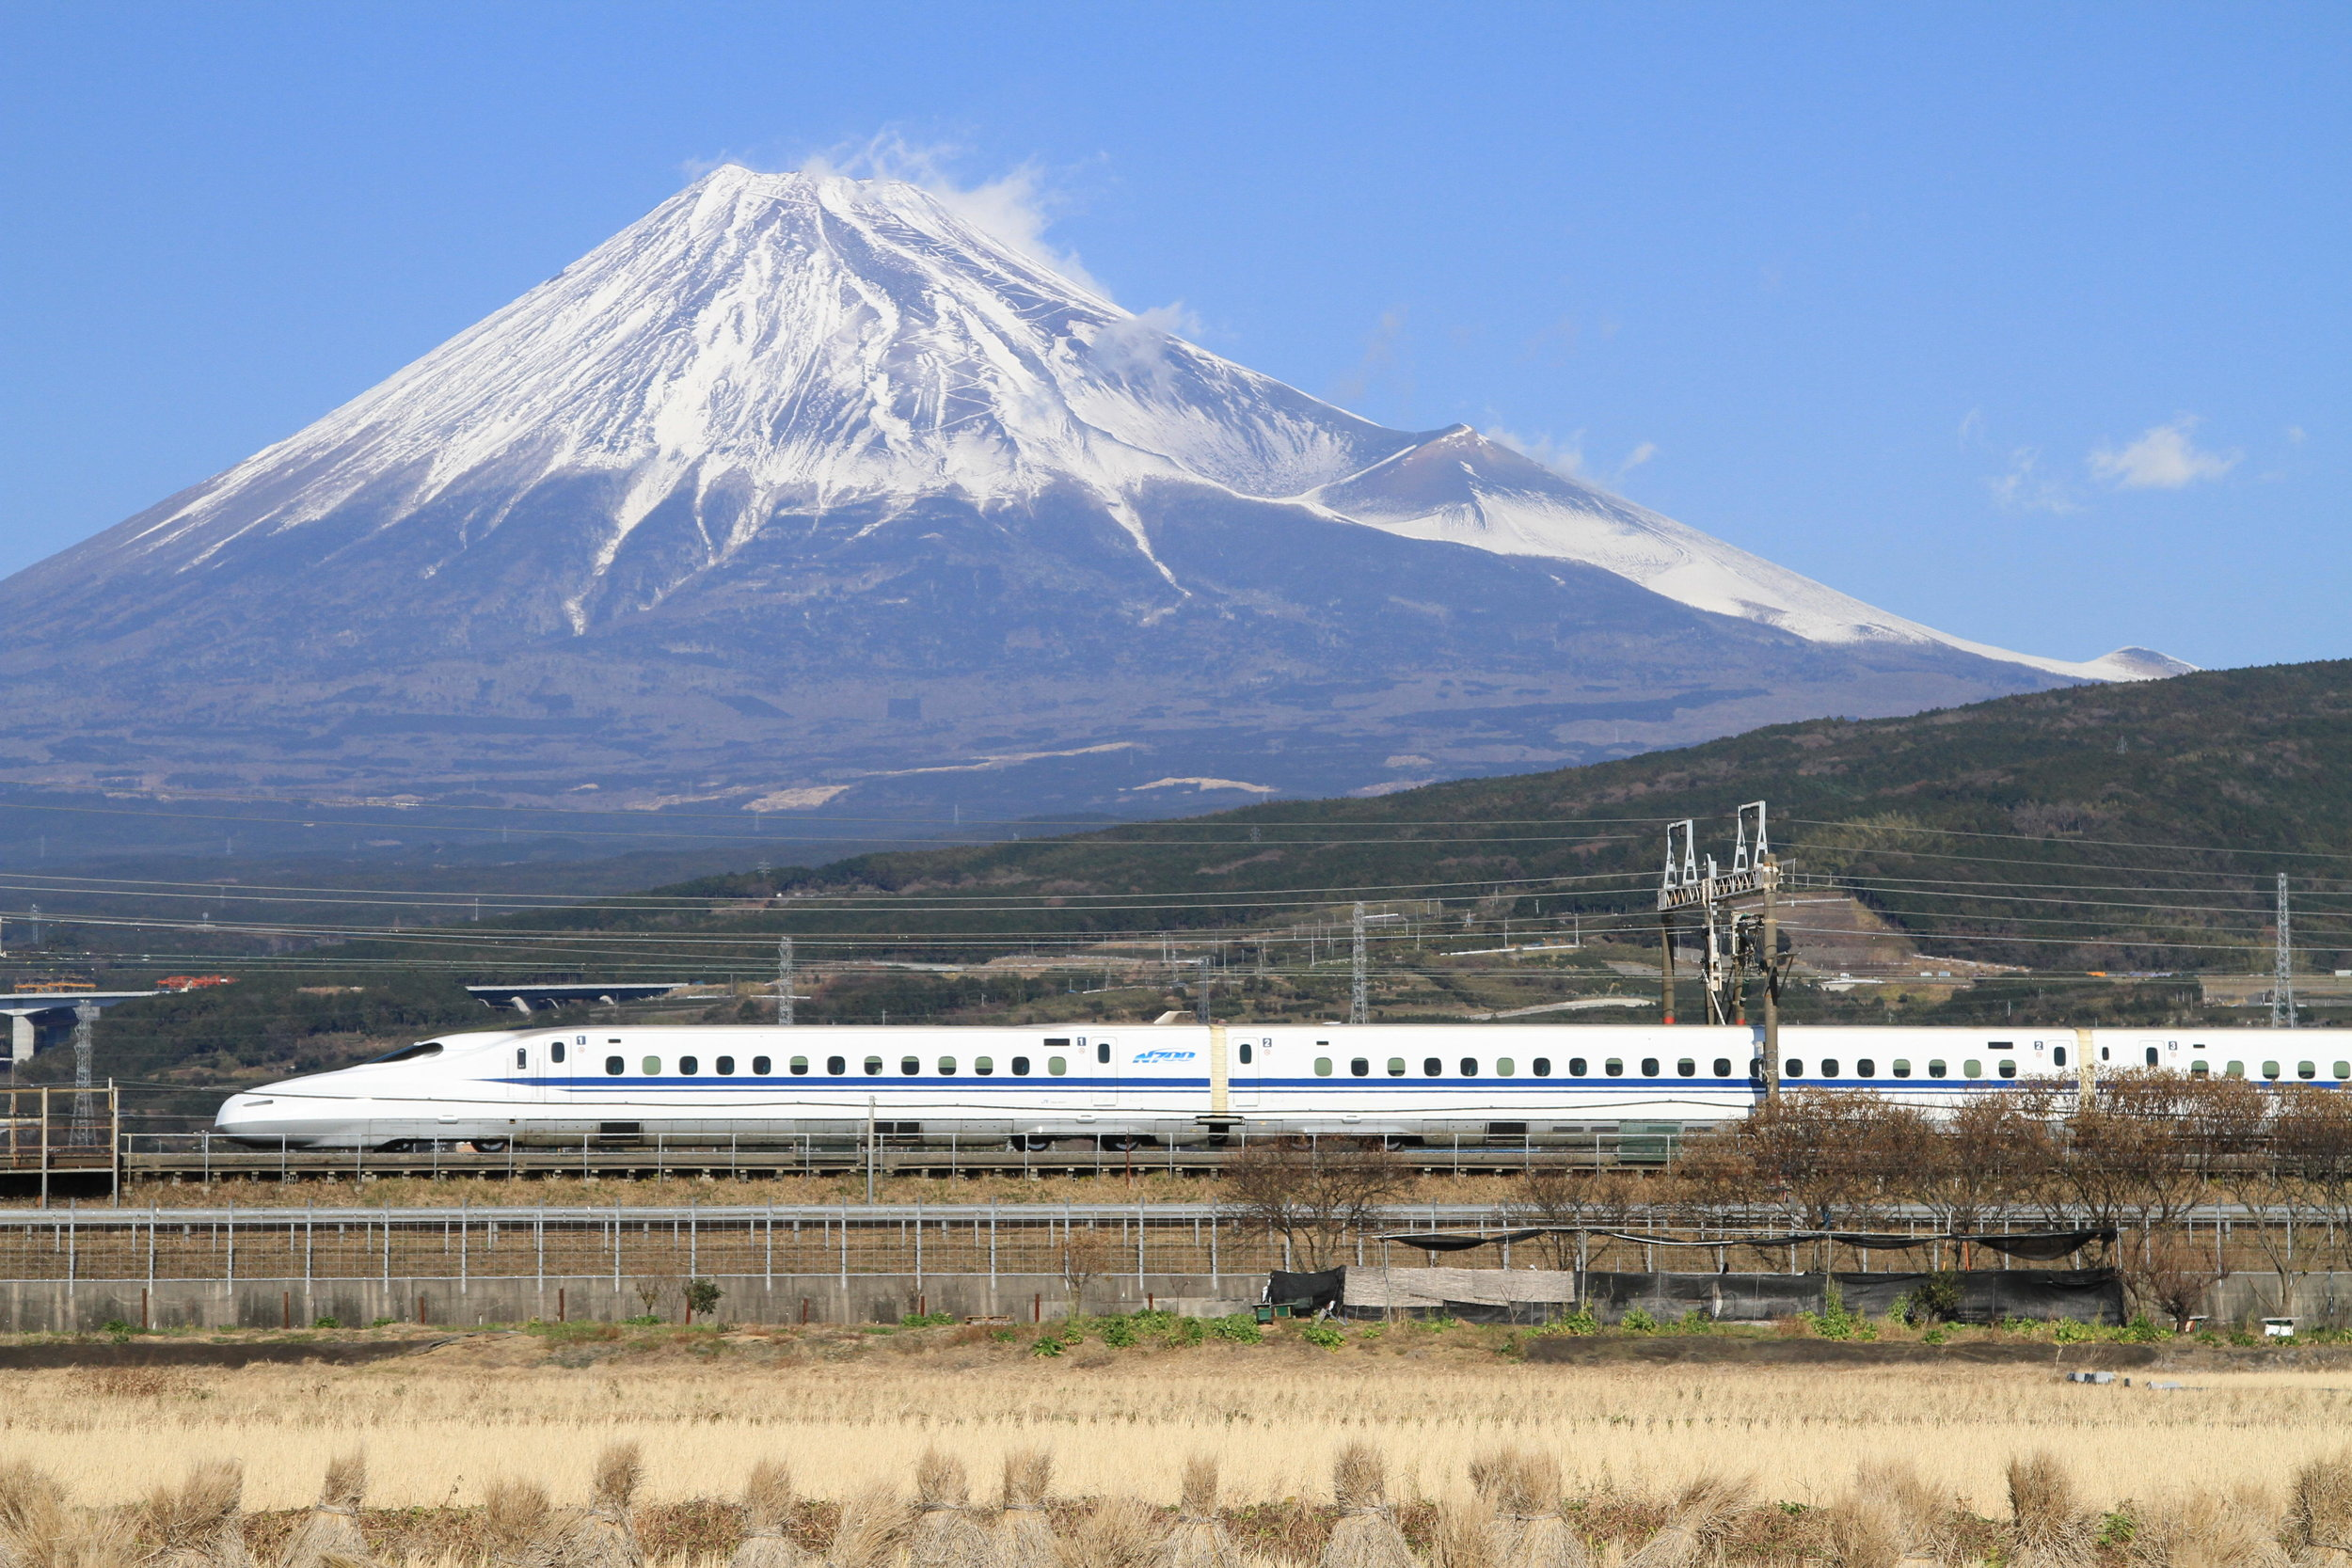 Mount Fuji as seen from a Shinkansen Train